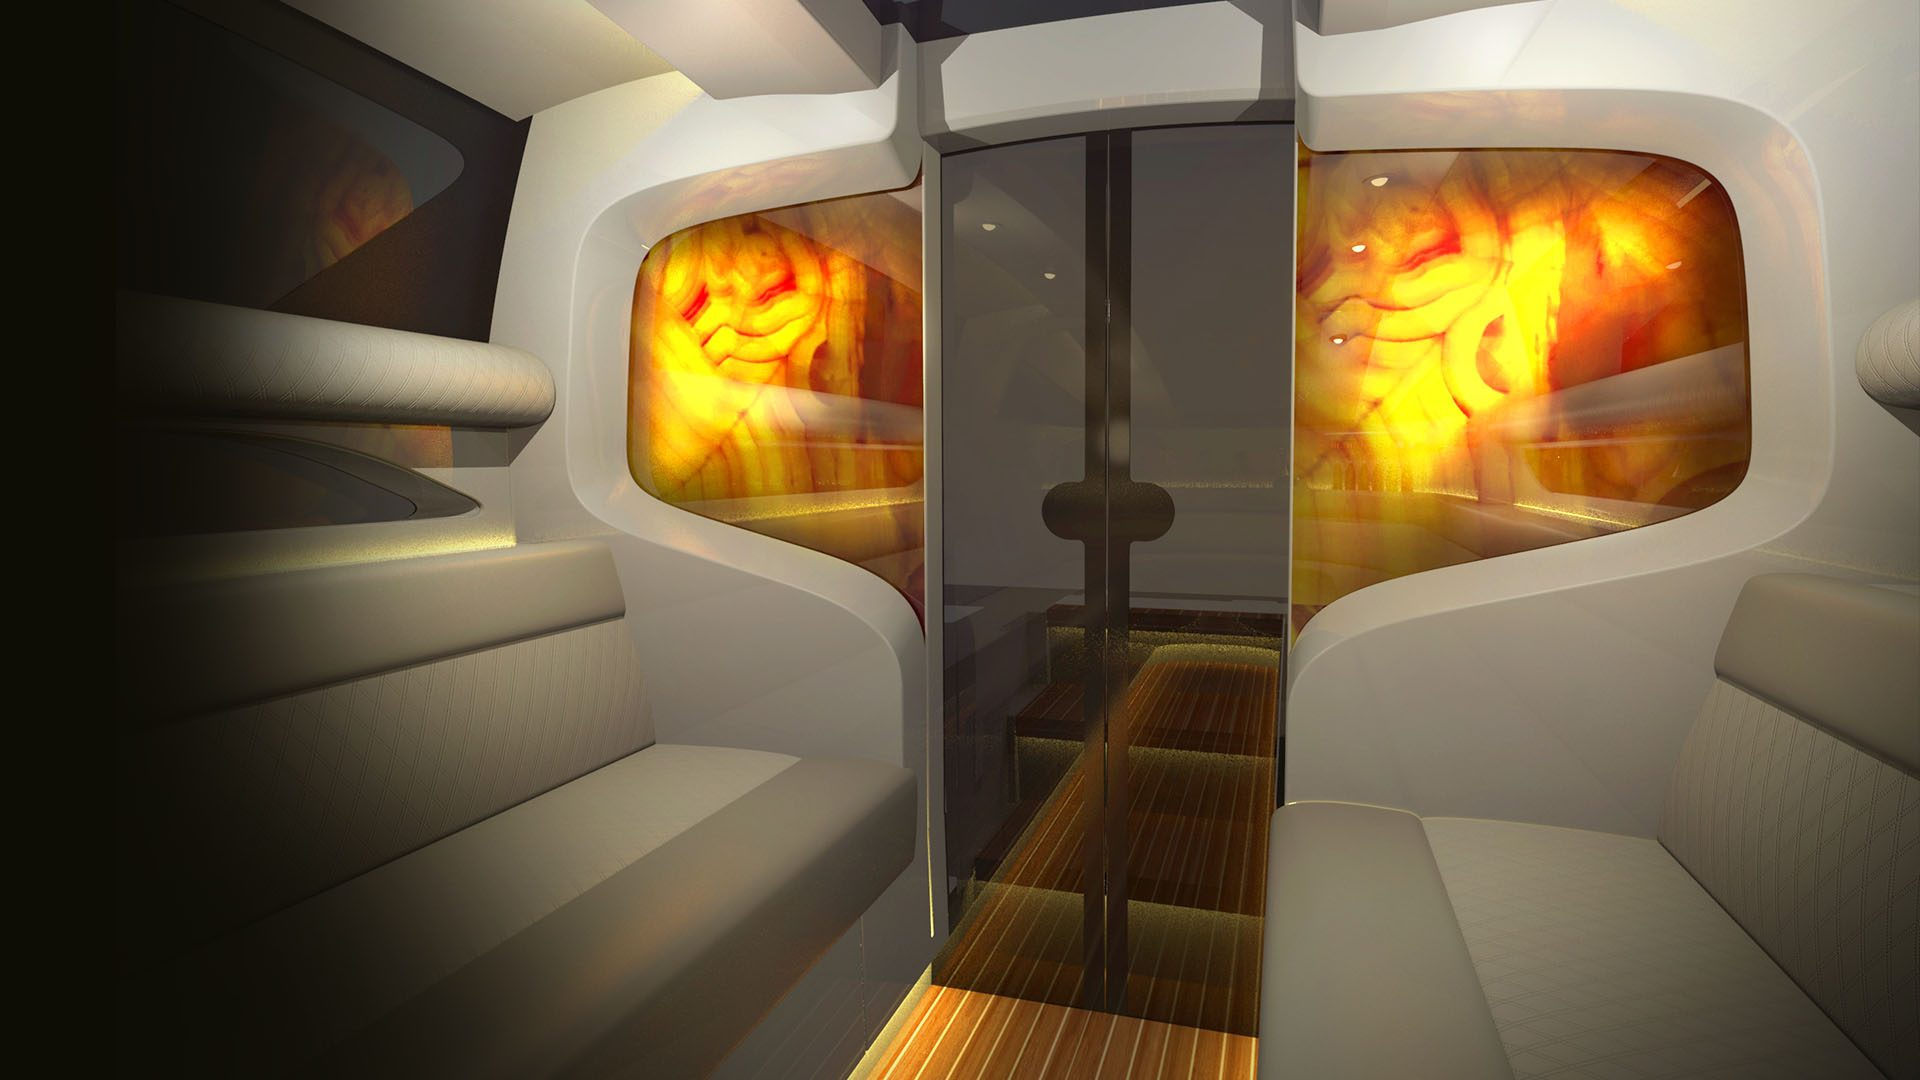 backlit onyx panel in the yacht interior design of the superyacht tender design by H.Bekradi